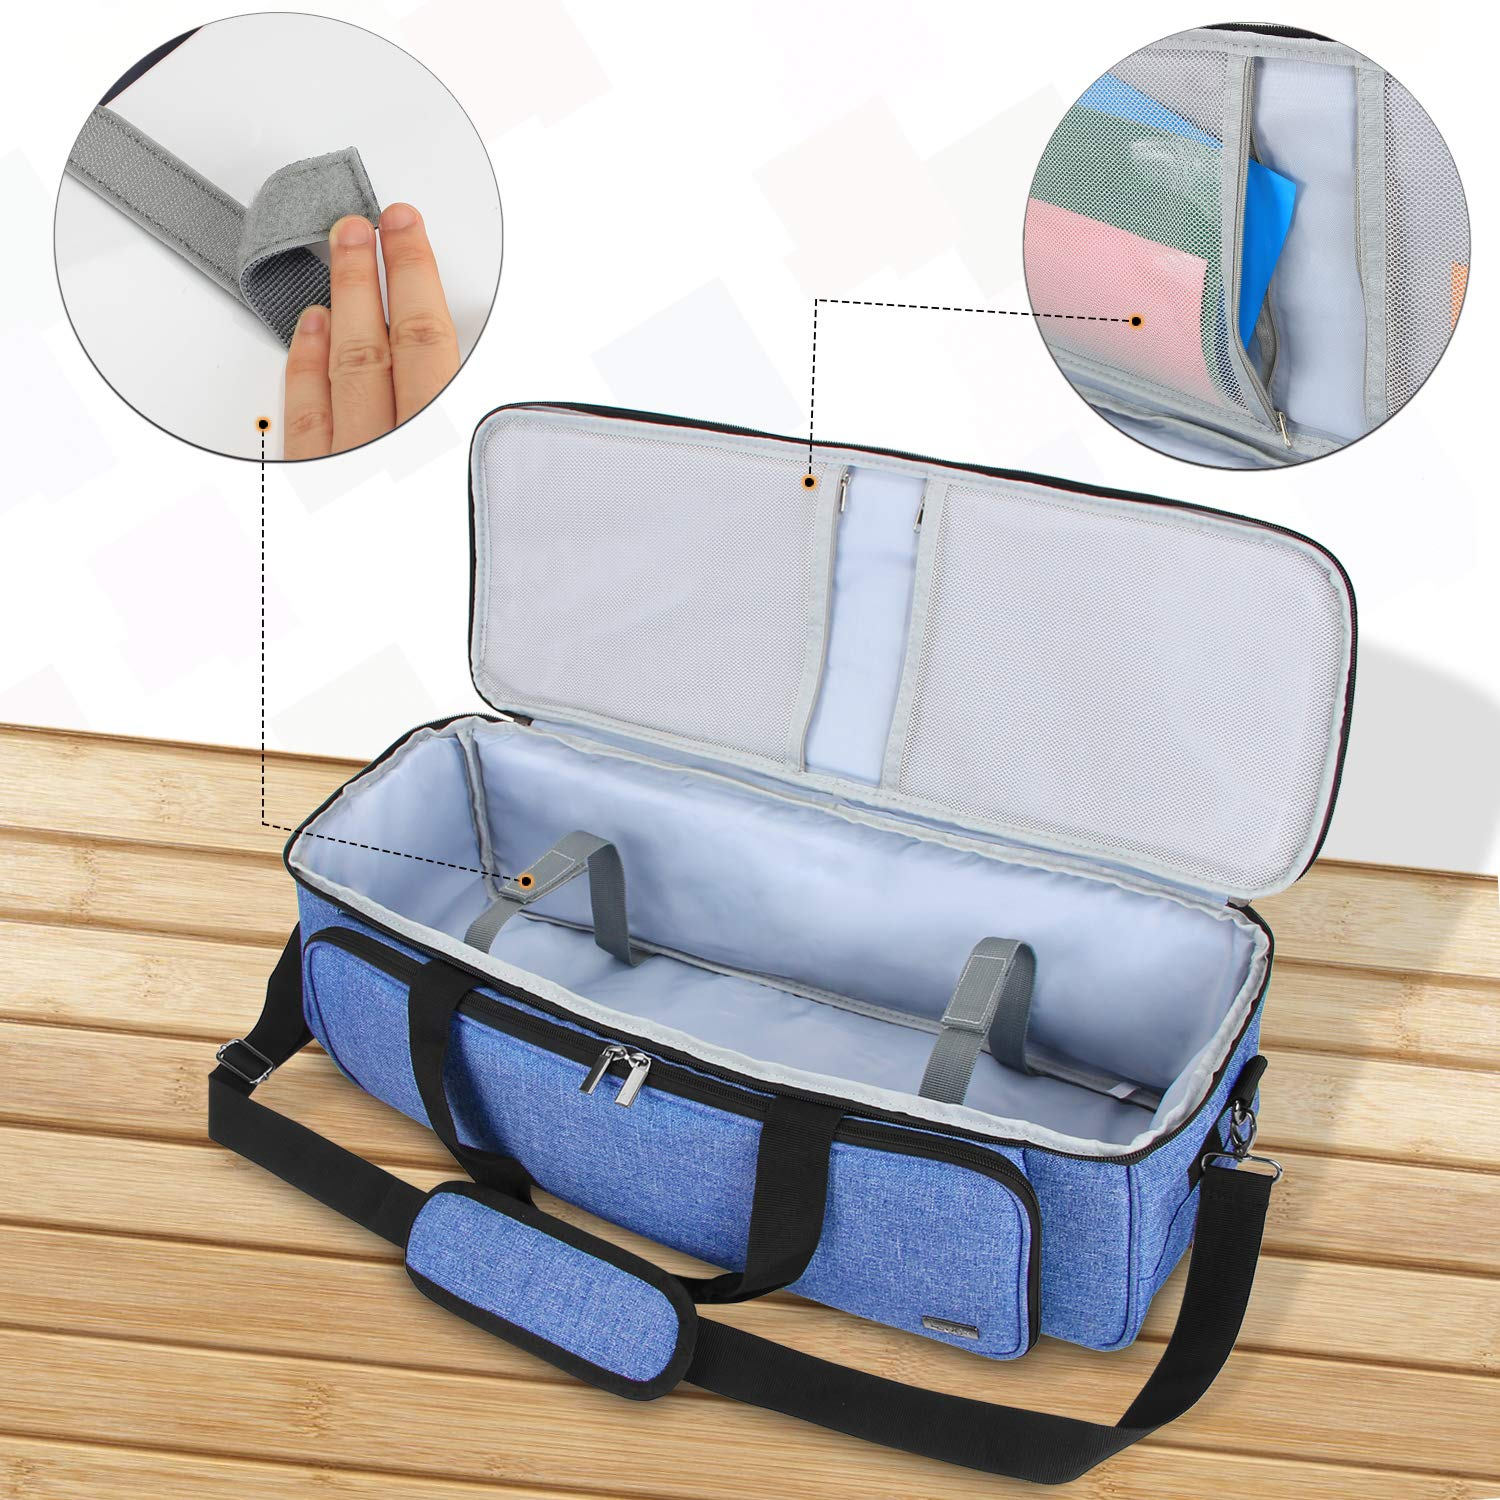 Luxja Carrying Bag Compatible with Cricut Die-Cutting Machine and Supplies Tote Bag Compatible with Cricut Explore Air and Maker Air2 Bag Only, Patent Pending Blue